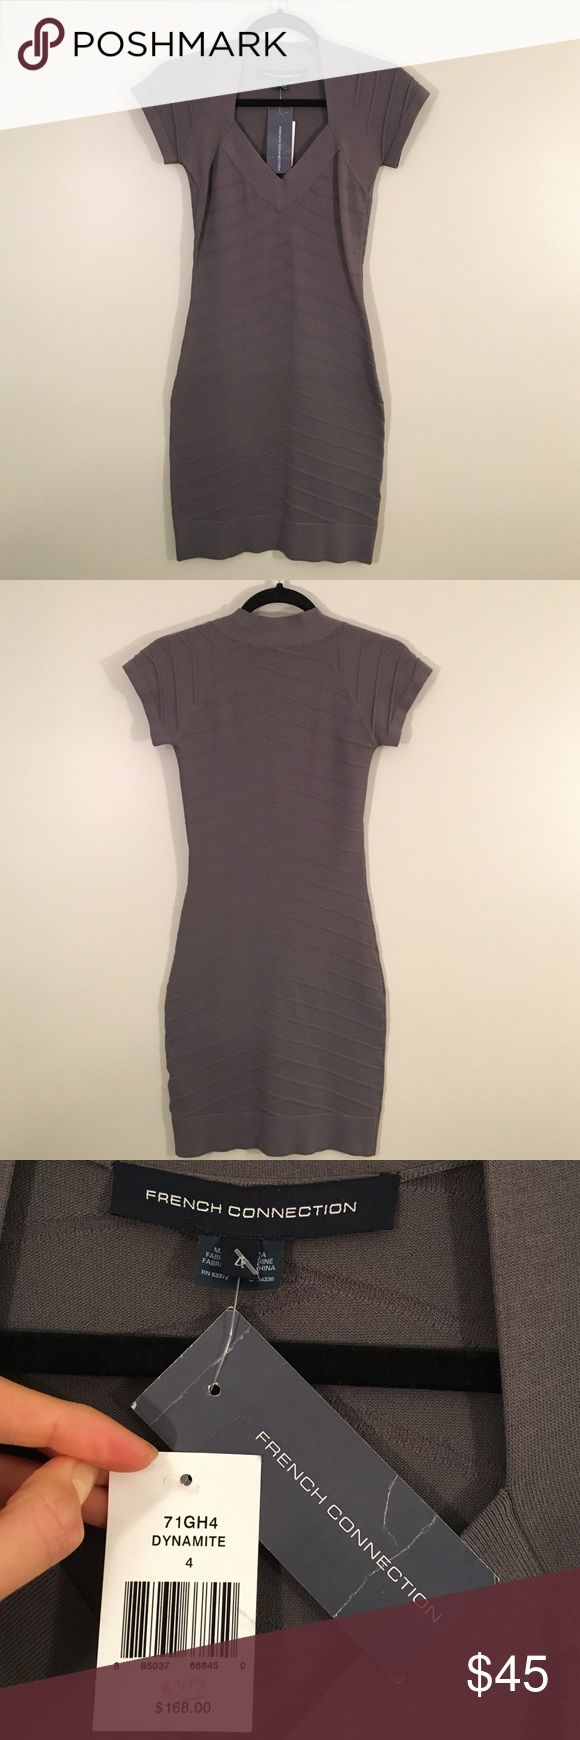 French Connection NWT Grey Body Con Dress Brand New with Tags & Never Worn! Perfect for NYE! Size 4. Short sleeves. I'm 5'7 and it hits a little above the knee. Great looking dress, I just don't have anywhere to wear it! French Connection Dresses Mini